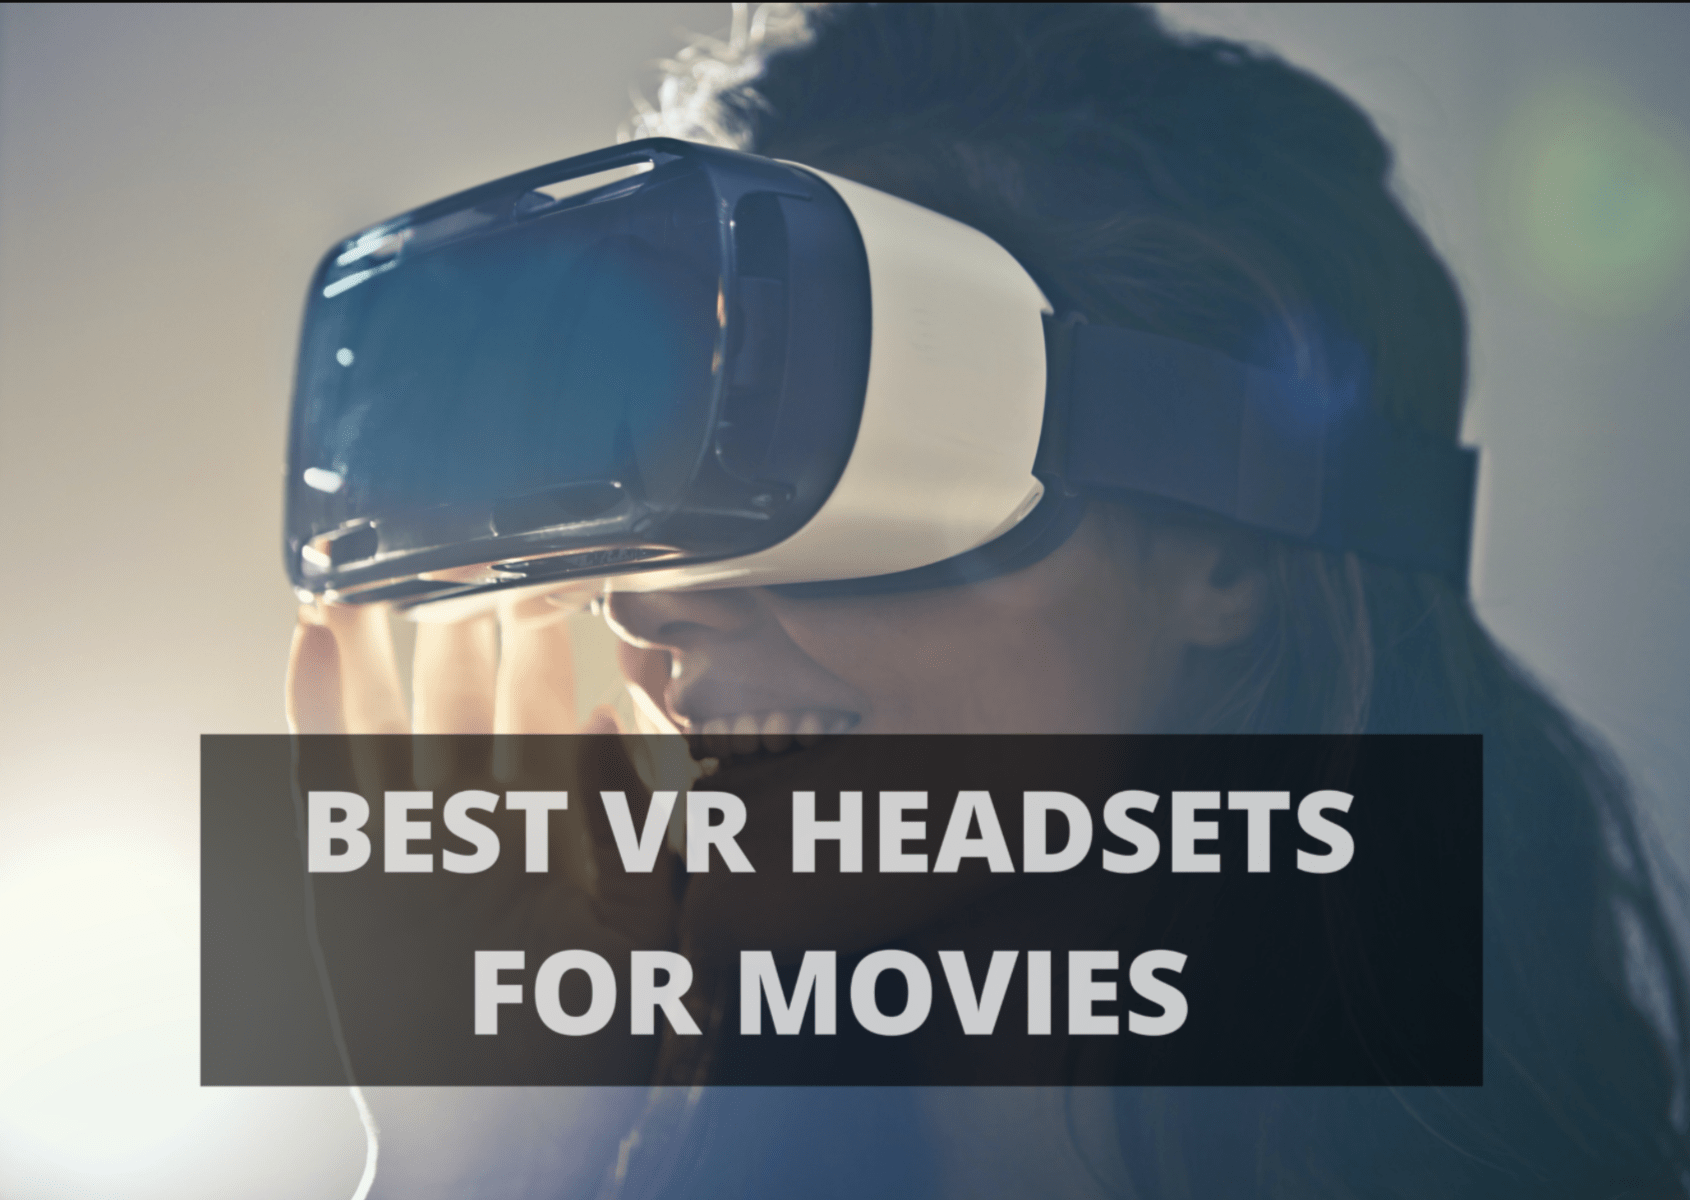 6 Best VR Headsets For Movies to buy in 2021